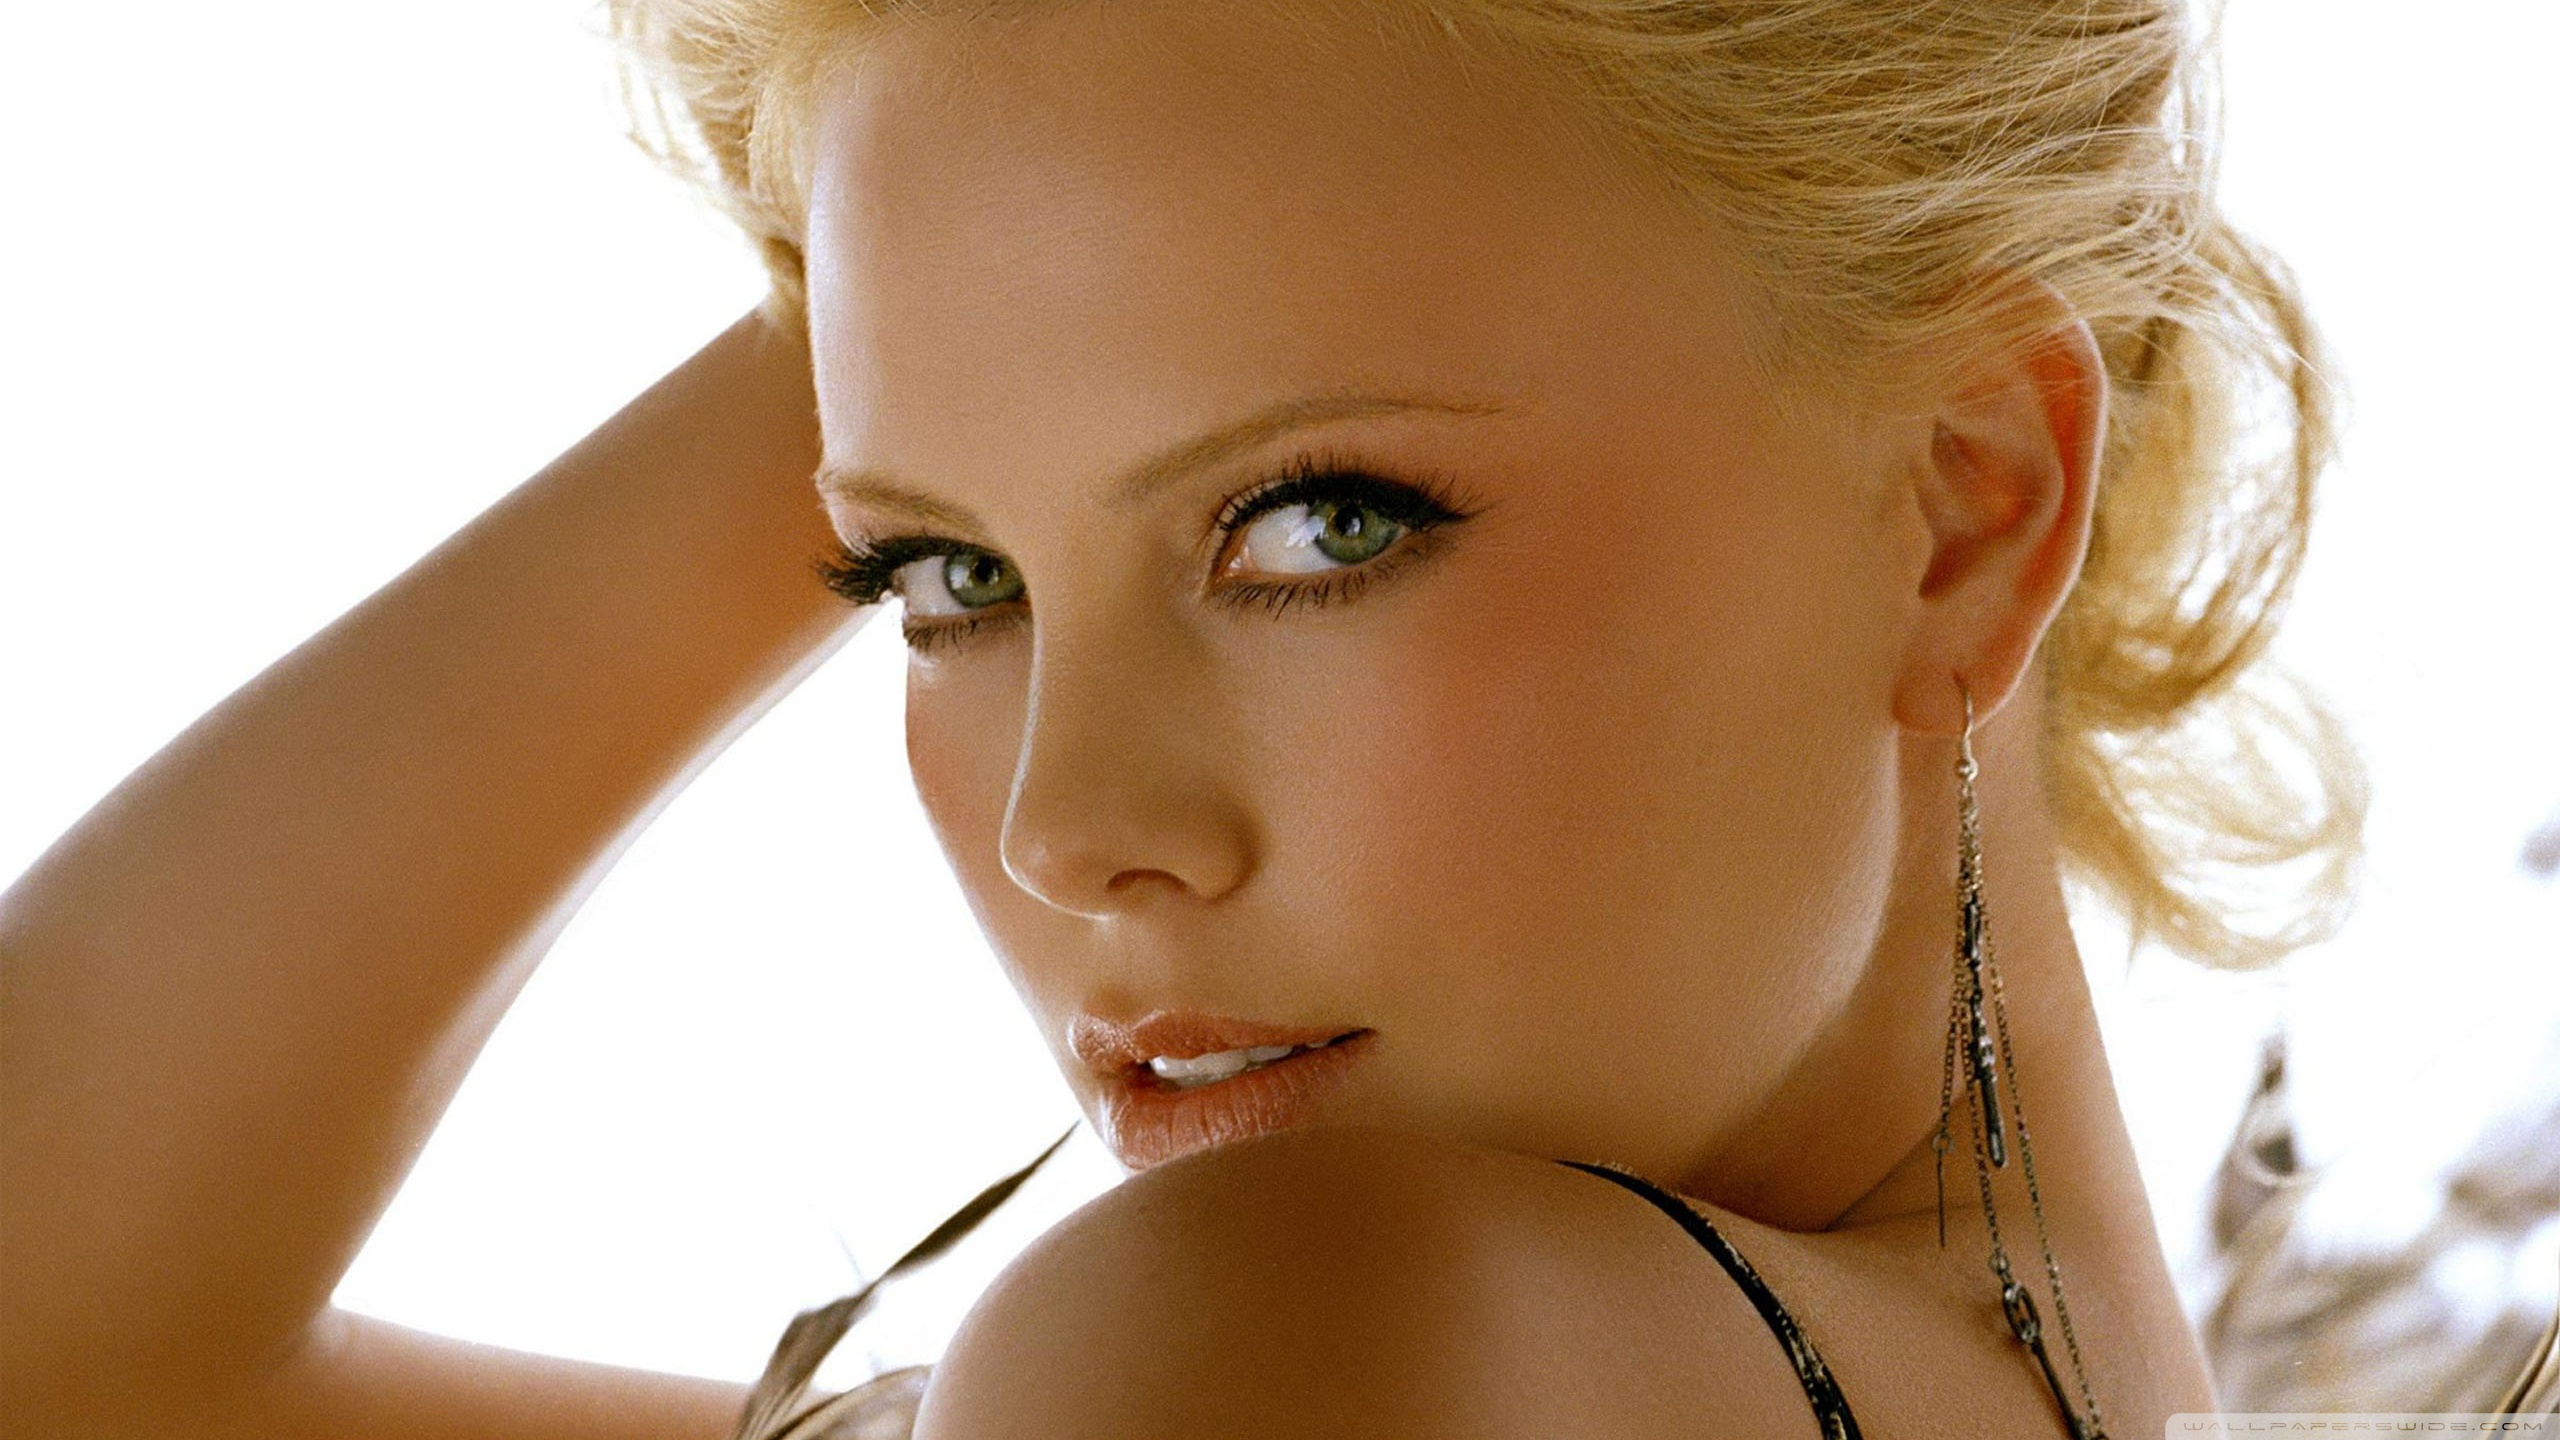 Charlize Theron 5 beautiful female celebrities 35408707 2560 1440 - 10 Sexiest Countries With The Hottest Bombshells!